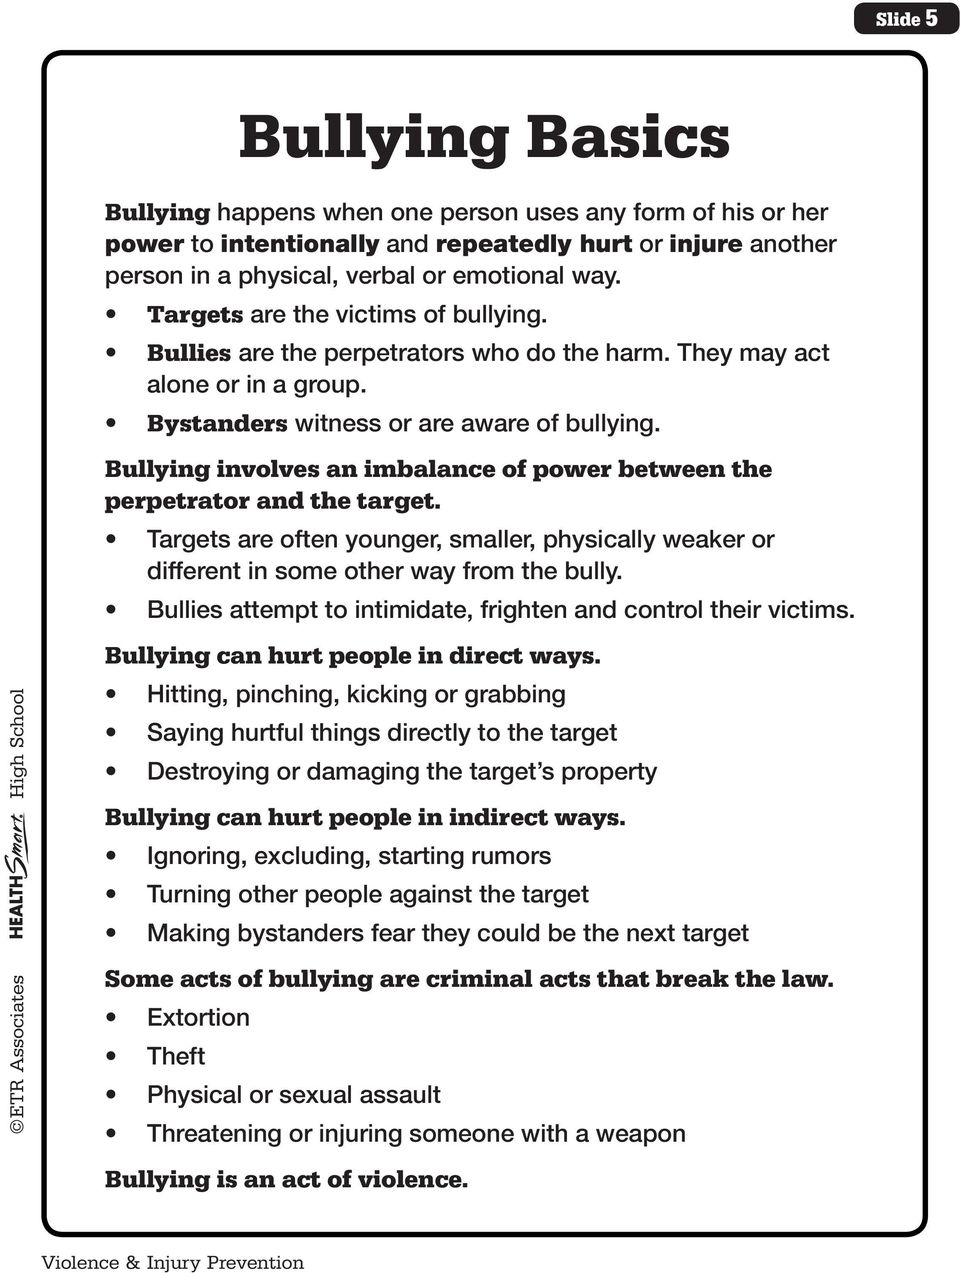 Bullying involves an imbalance of power between the perpetrator and the target. Targets are often younger, smaller, physically weaker or different in some other way from the bully.